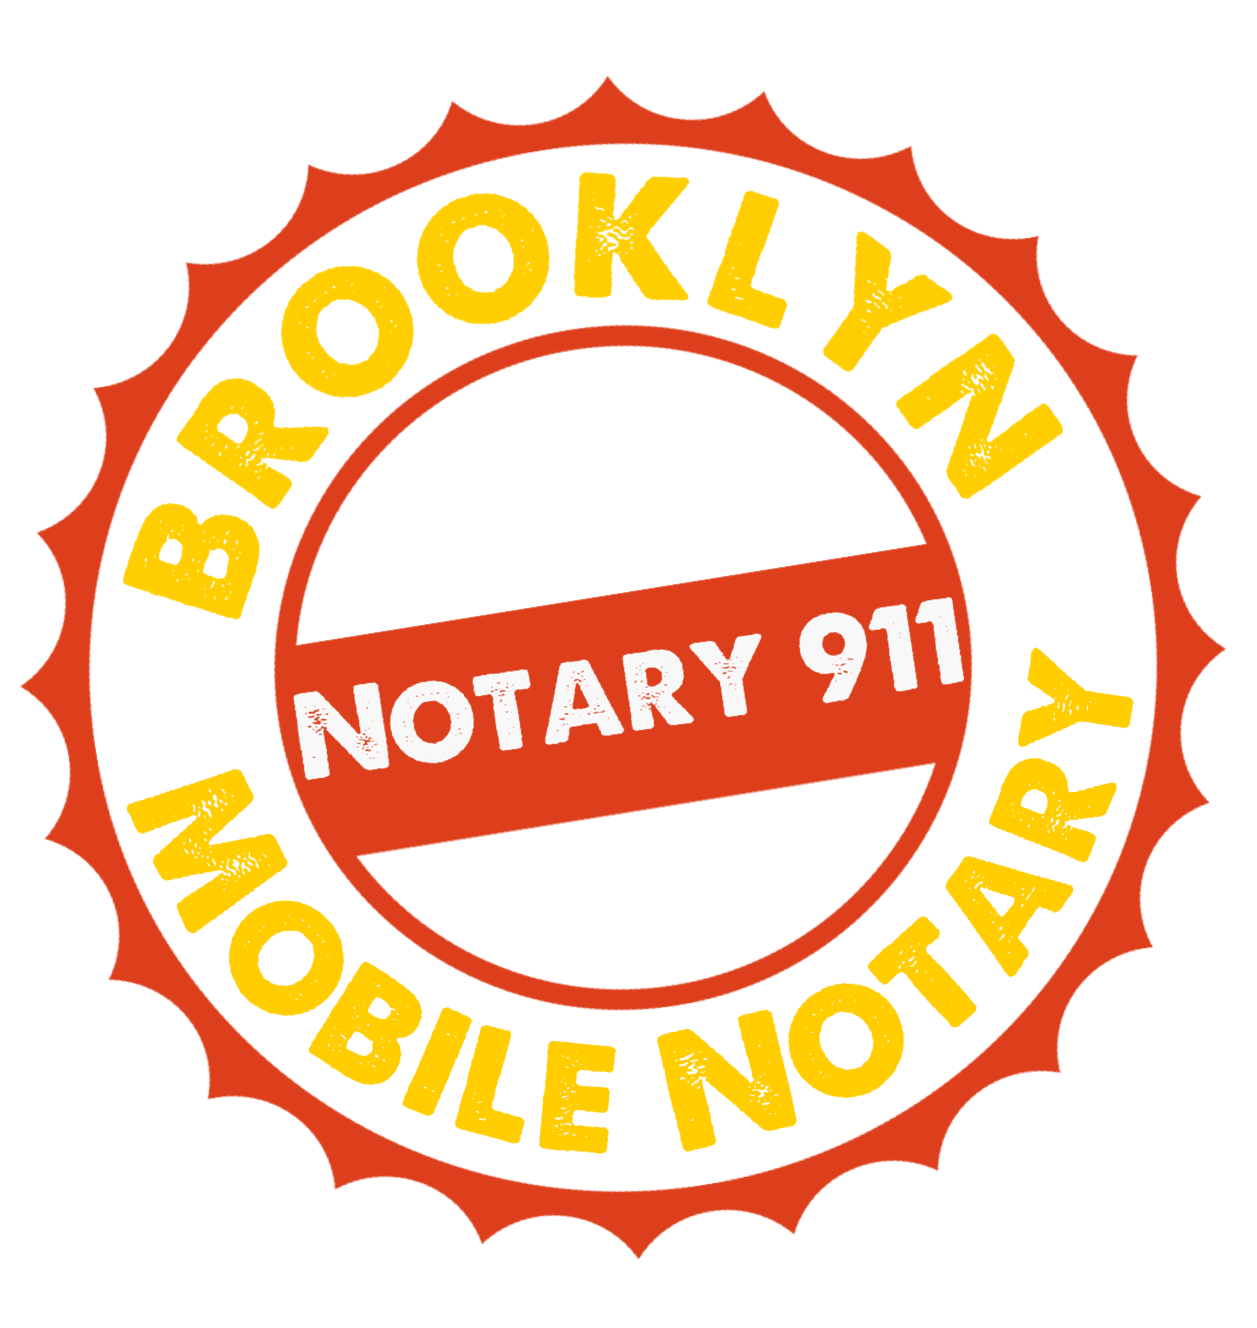 Brooklyn Mobile Notary / Notary911